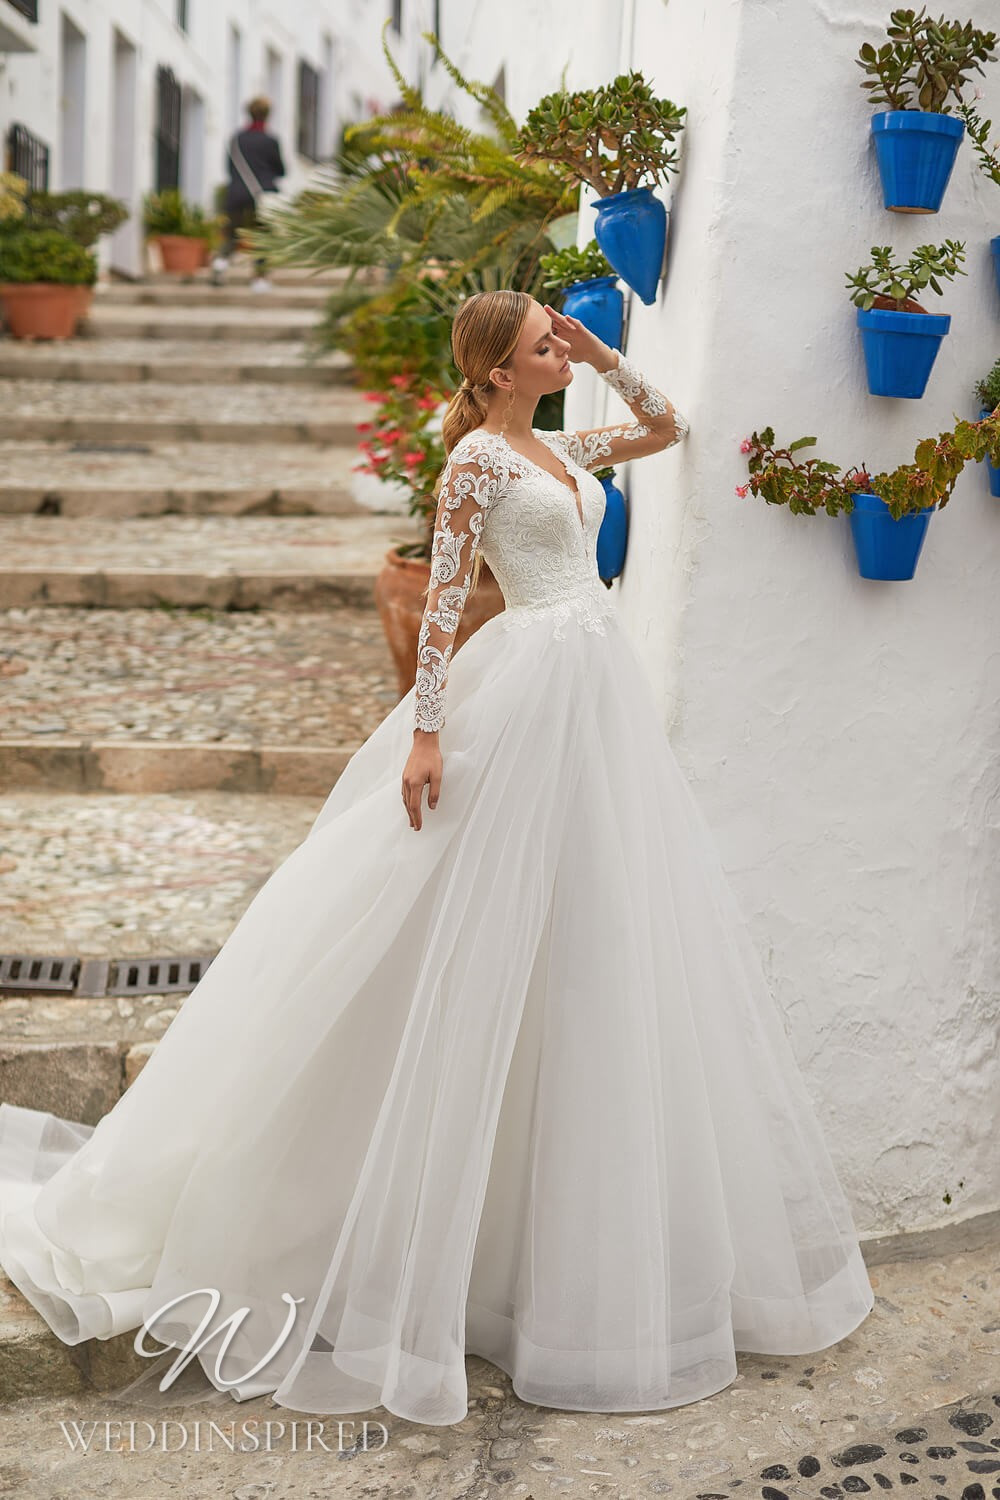 An Essential by Lussano 2021 lace and tulle princess wedding dress with long sleeves